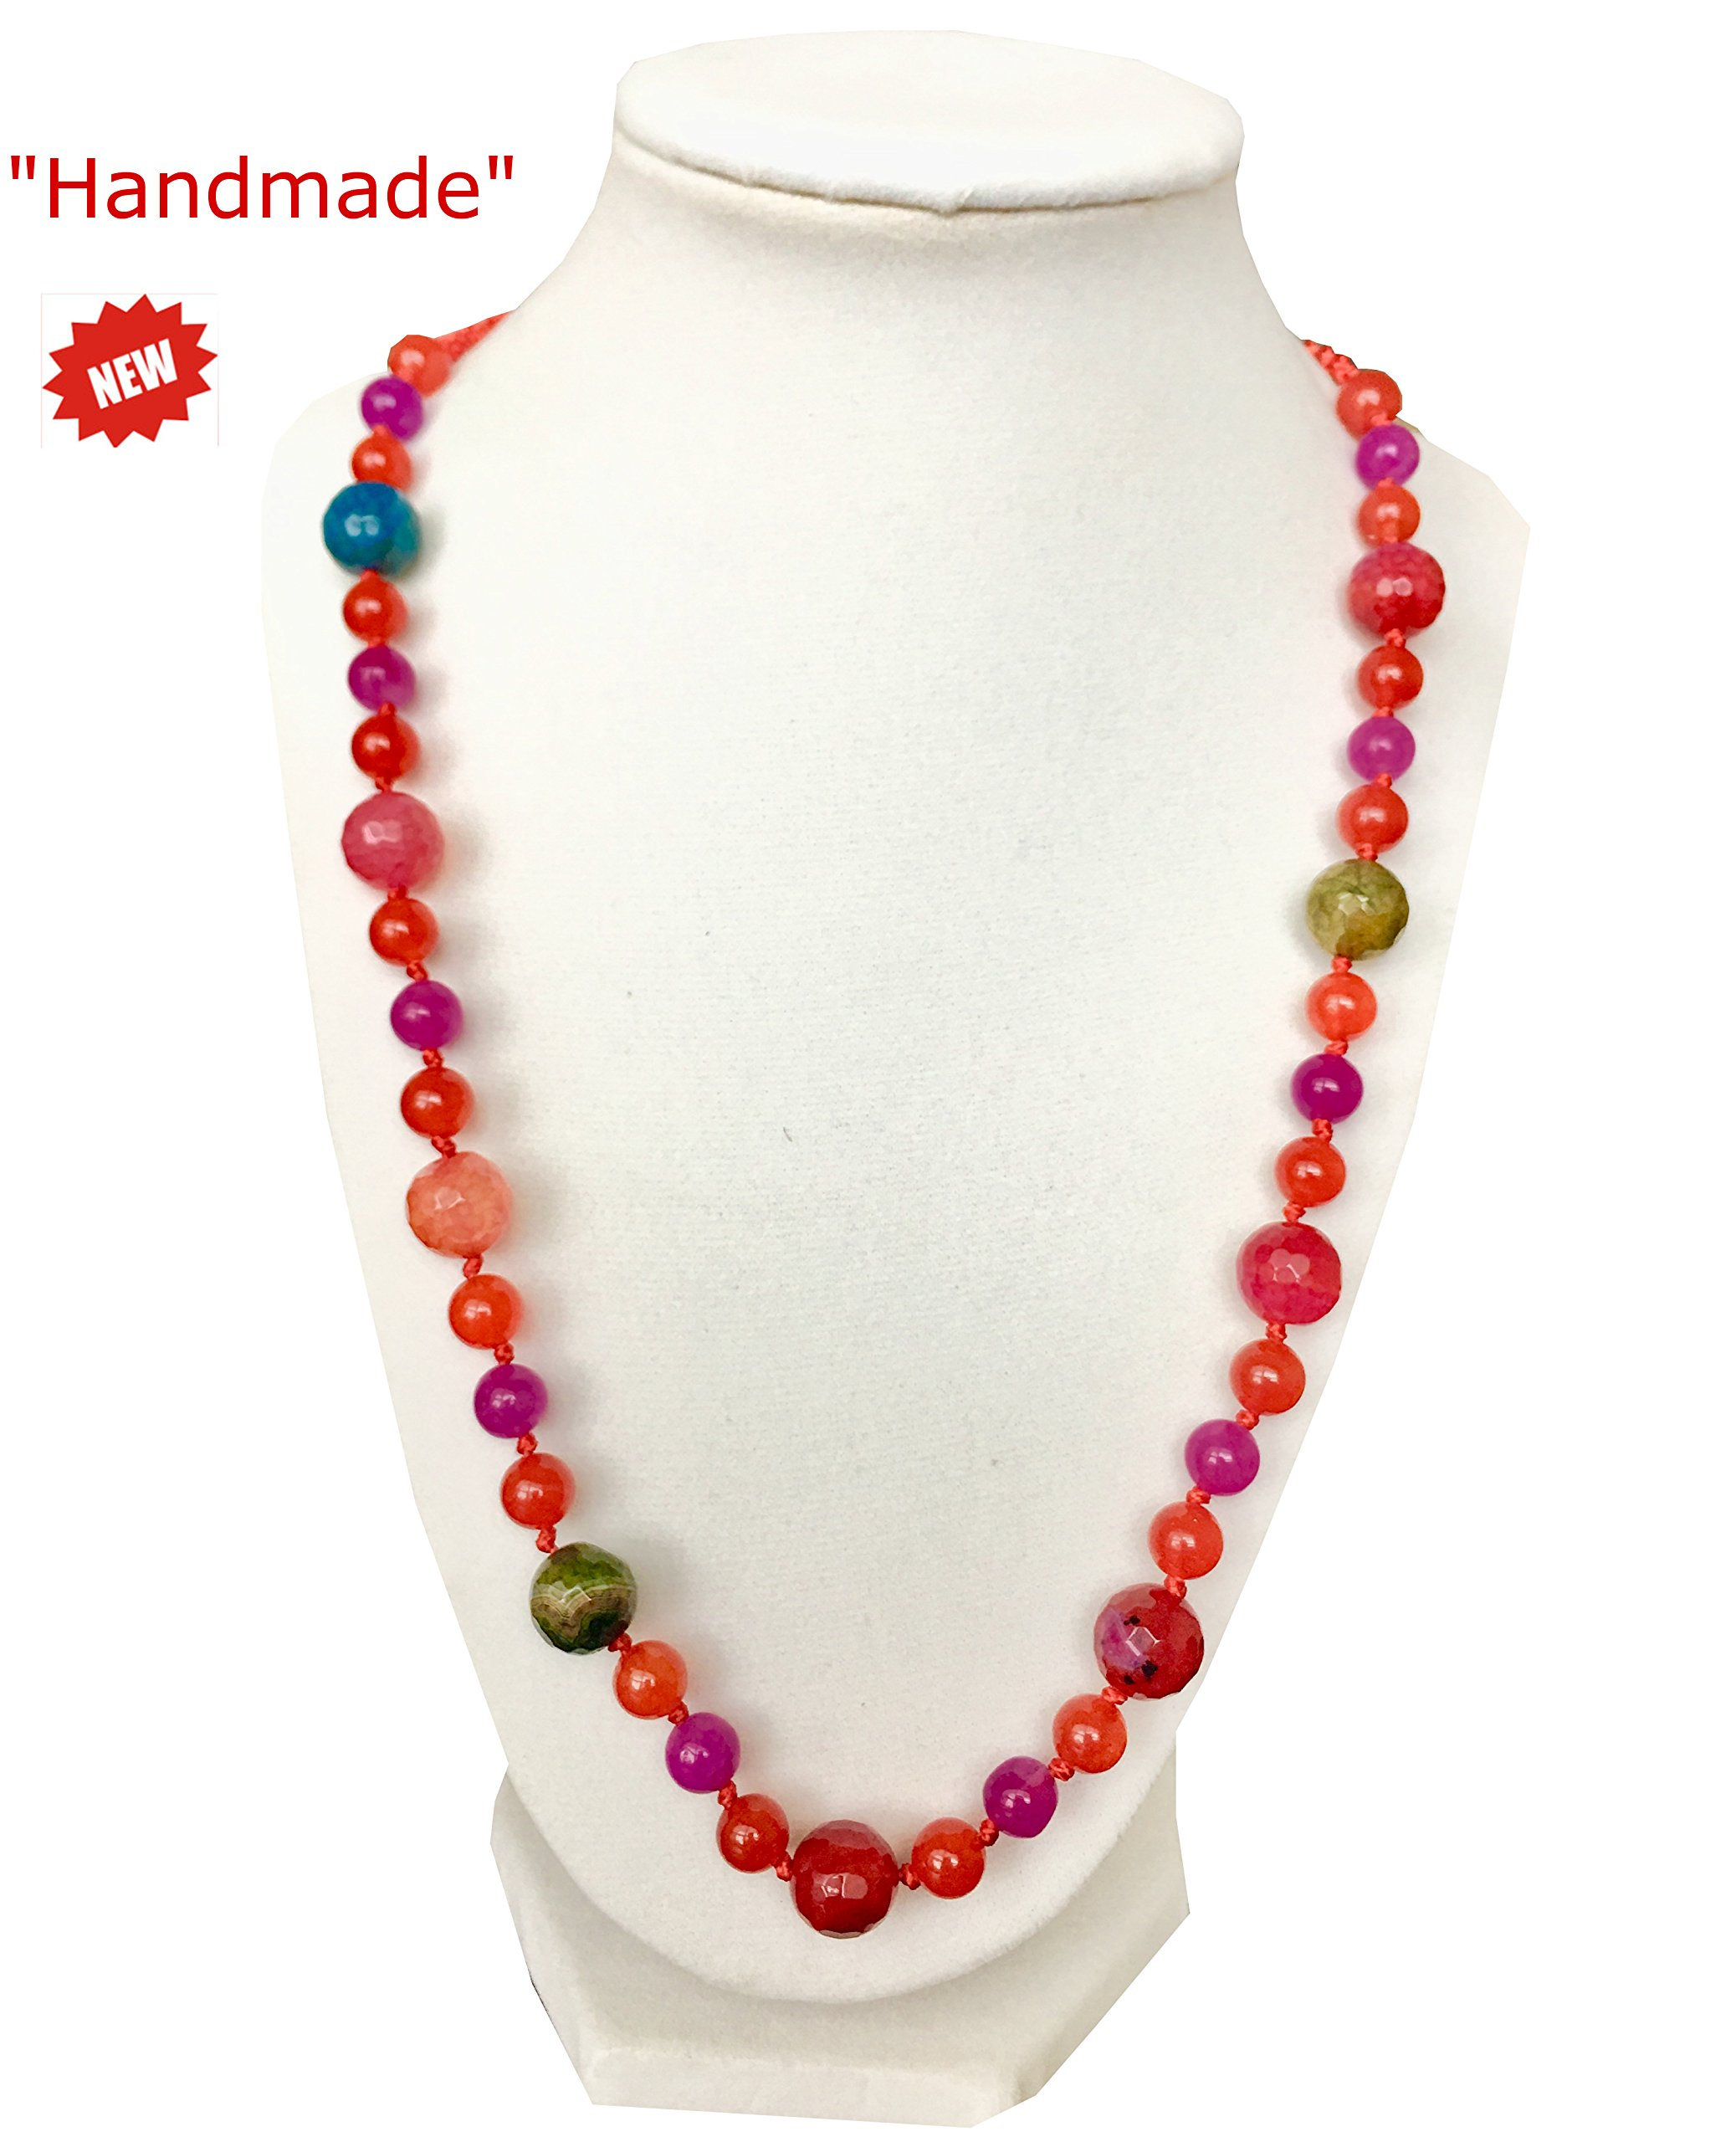 Himalayan Handmade Elegant Necklace Multi Color (Pink) Multi Size Beads & Gemstone Comes With Gift Box